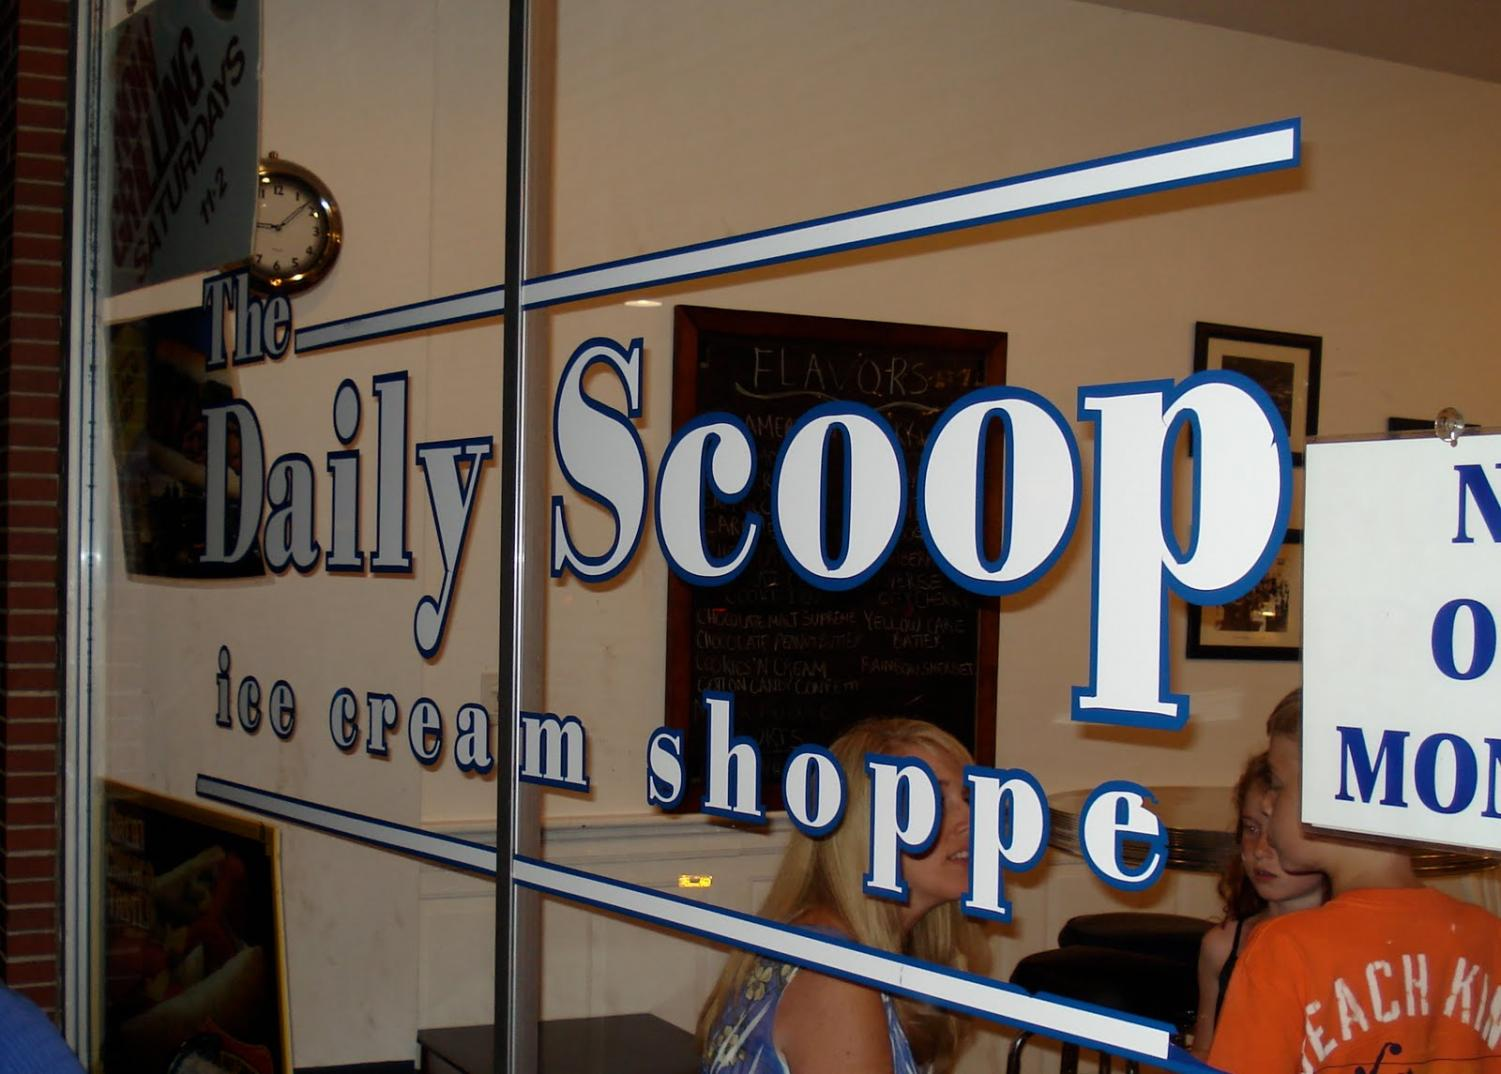 The Daily Scoop is a family friendly ice cream establishment located in Clarendon Hills and recently opened for the spring season.